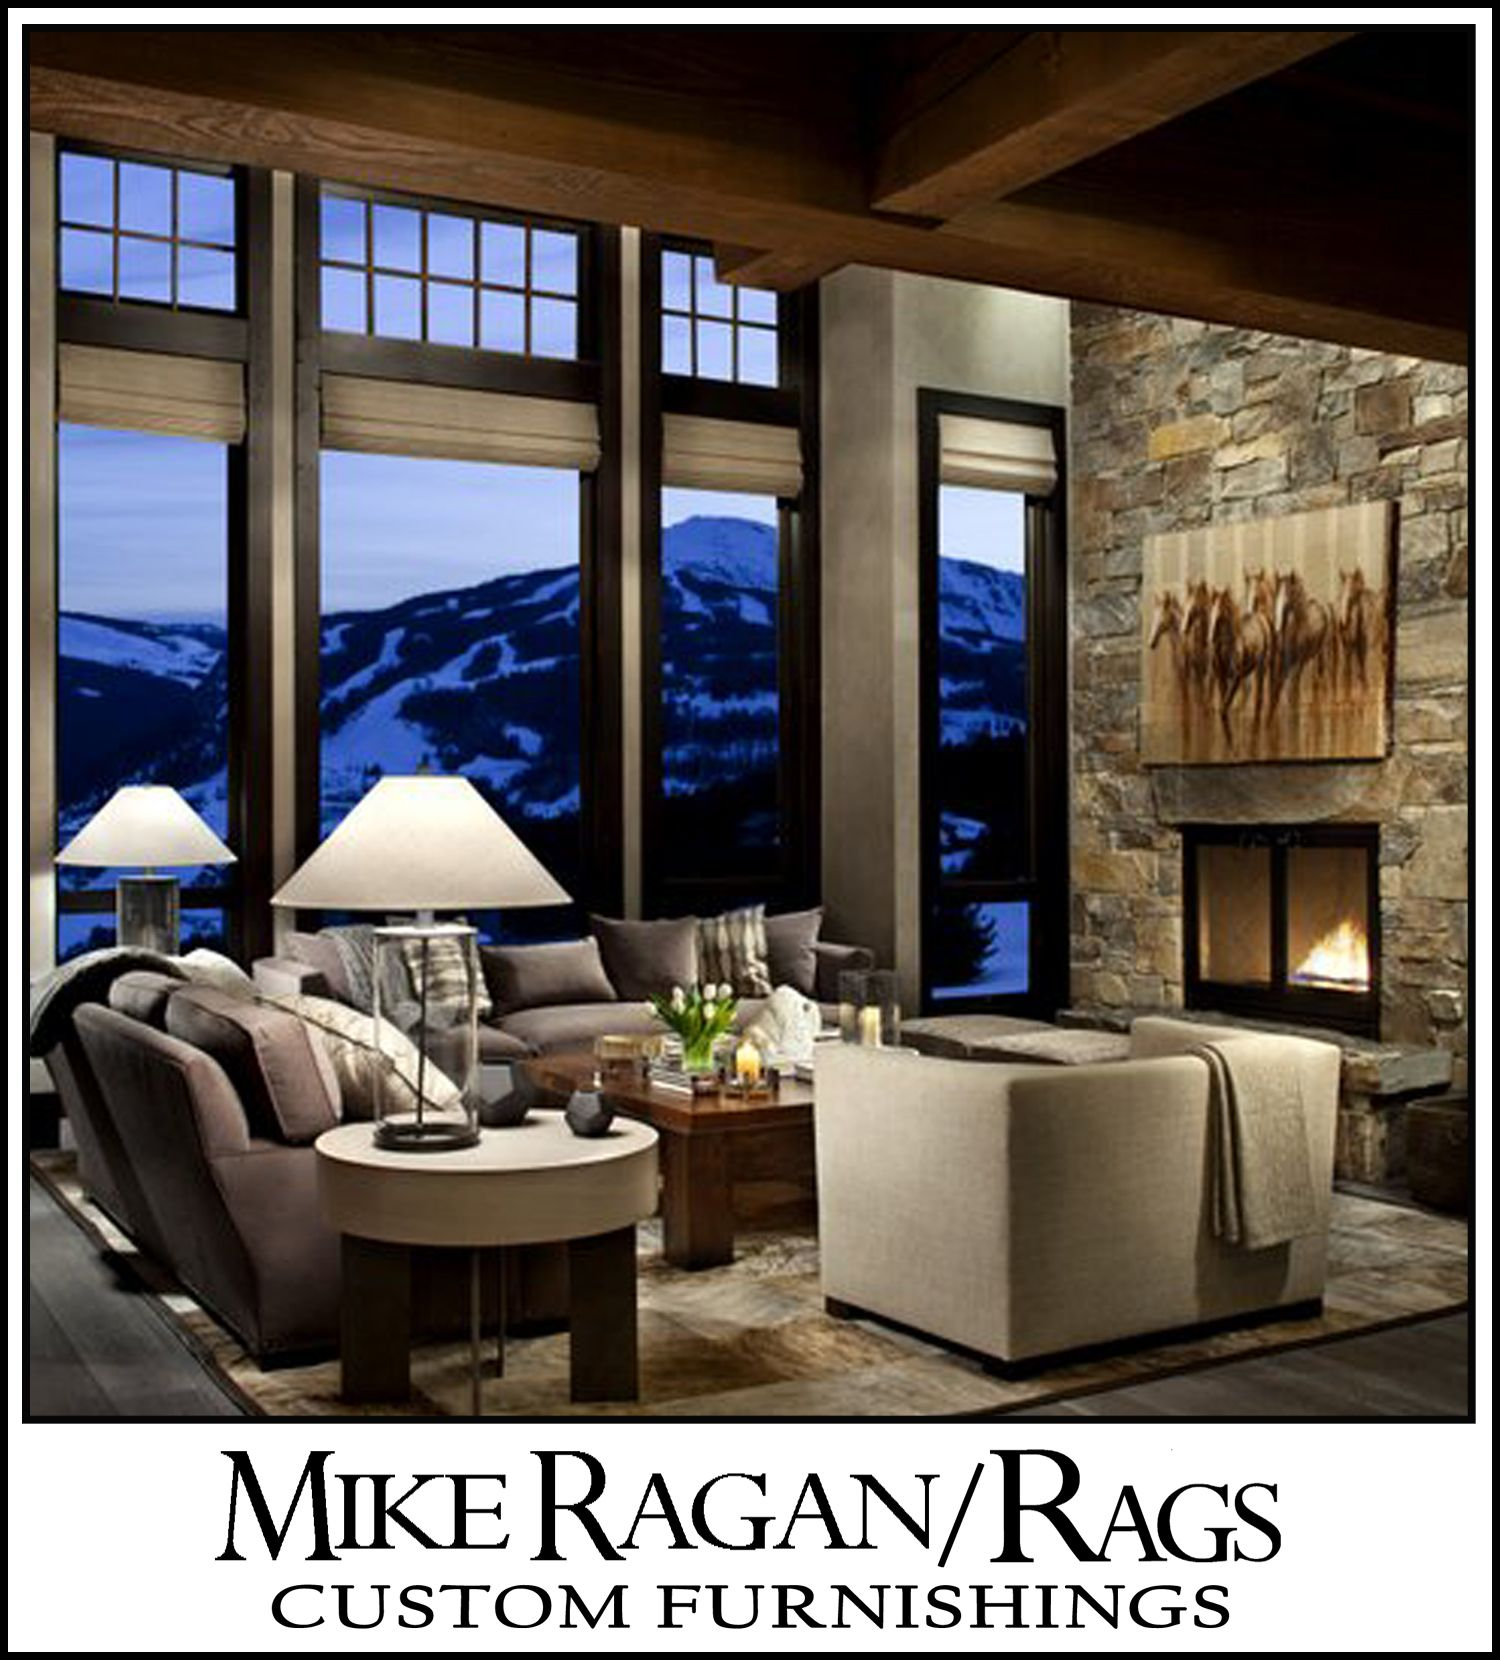 mountain living interior design by lisa kanning cozy on modern cozy mountain home design ideas id=35200